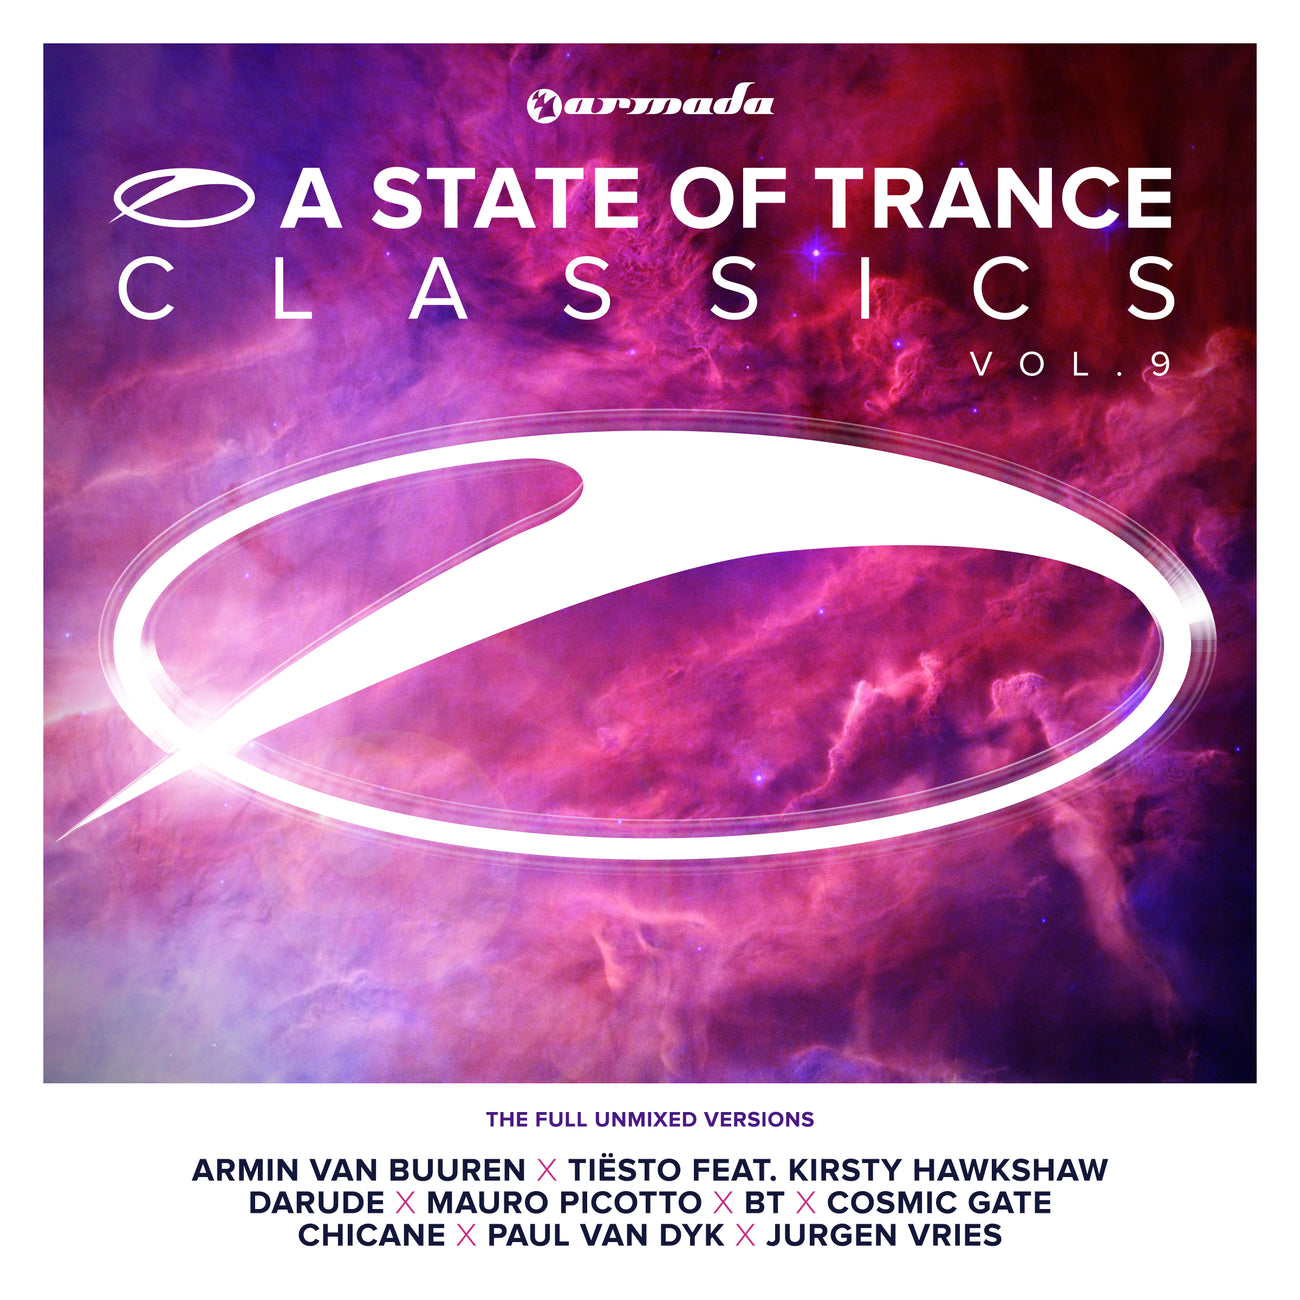 A State Of Trance Classics Vol. 9